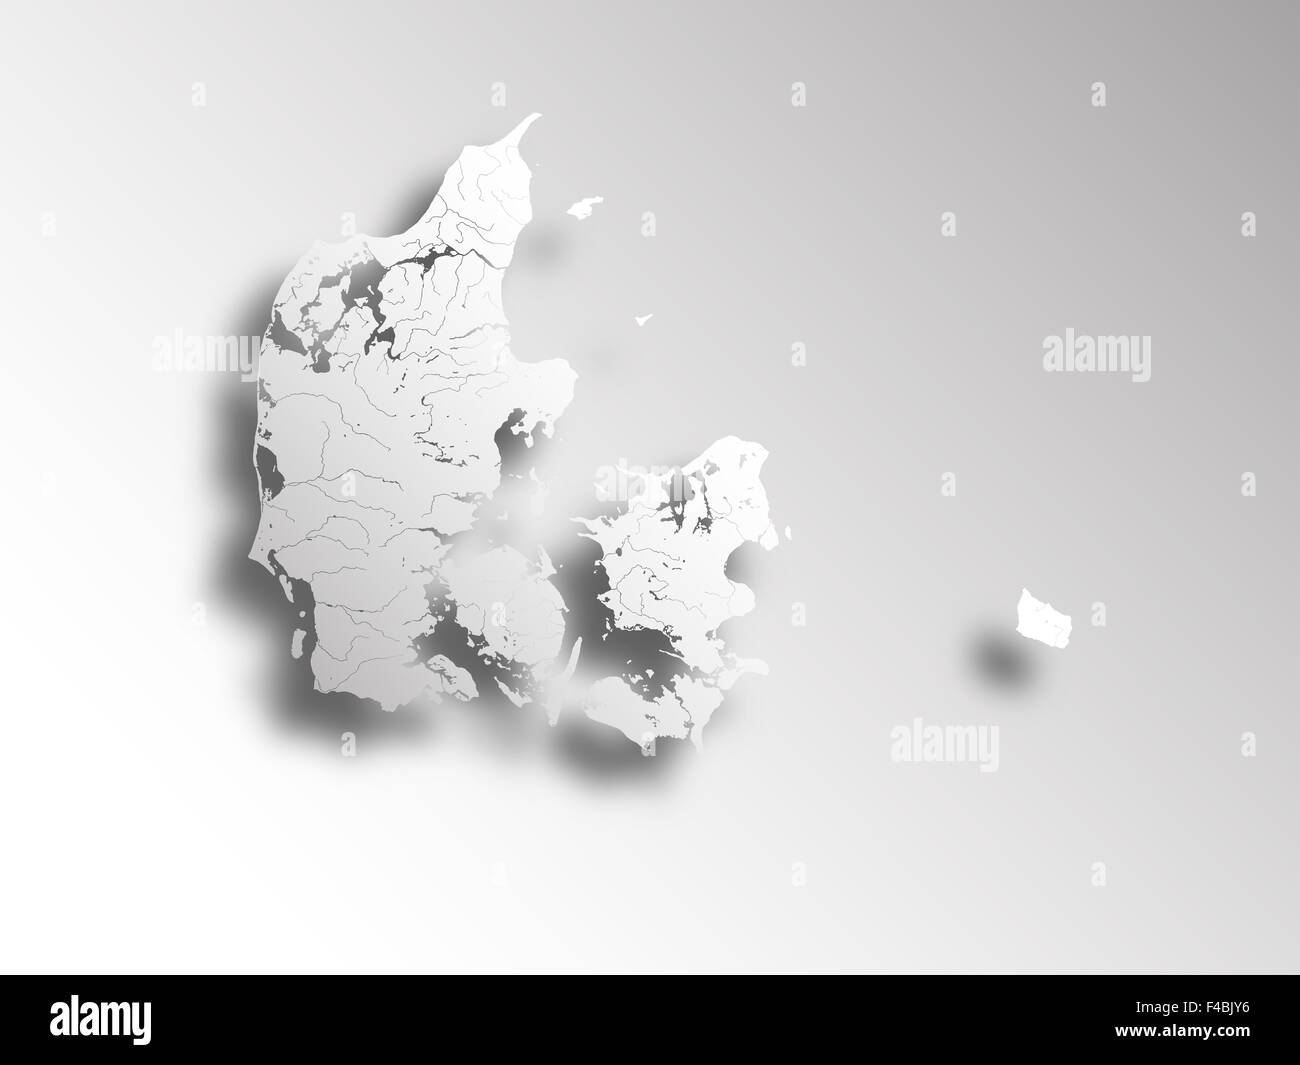 Map of Denmark with paper cut effect. Rivers and lakes are shown. - Stock Image